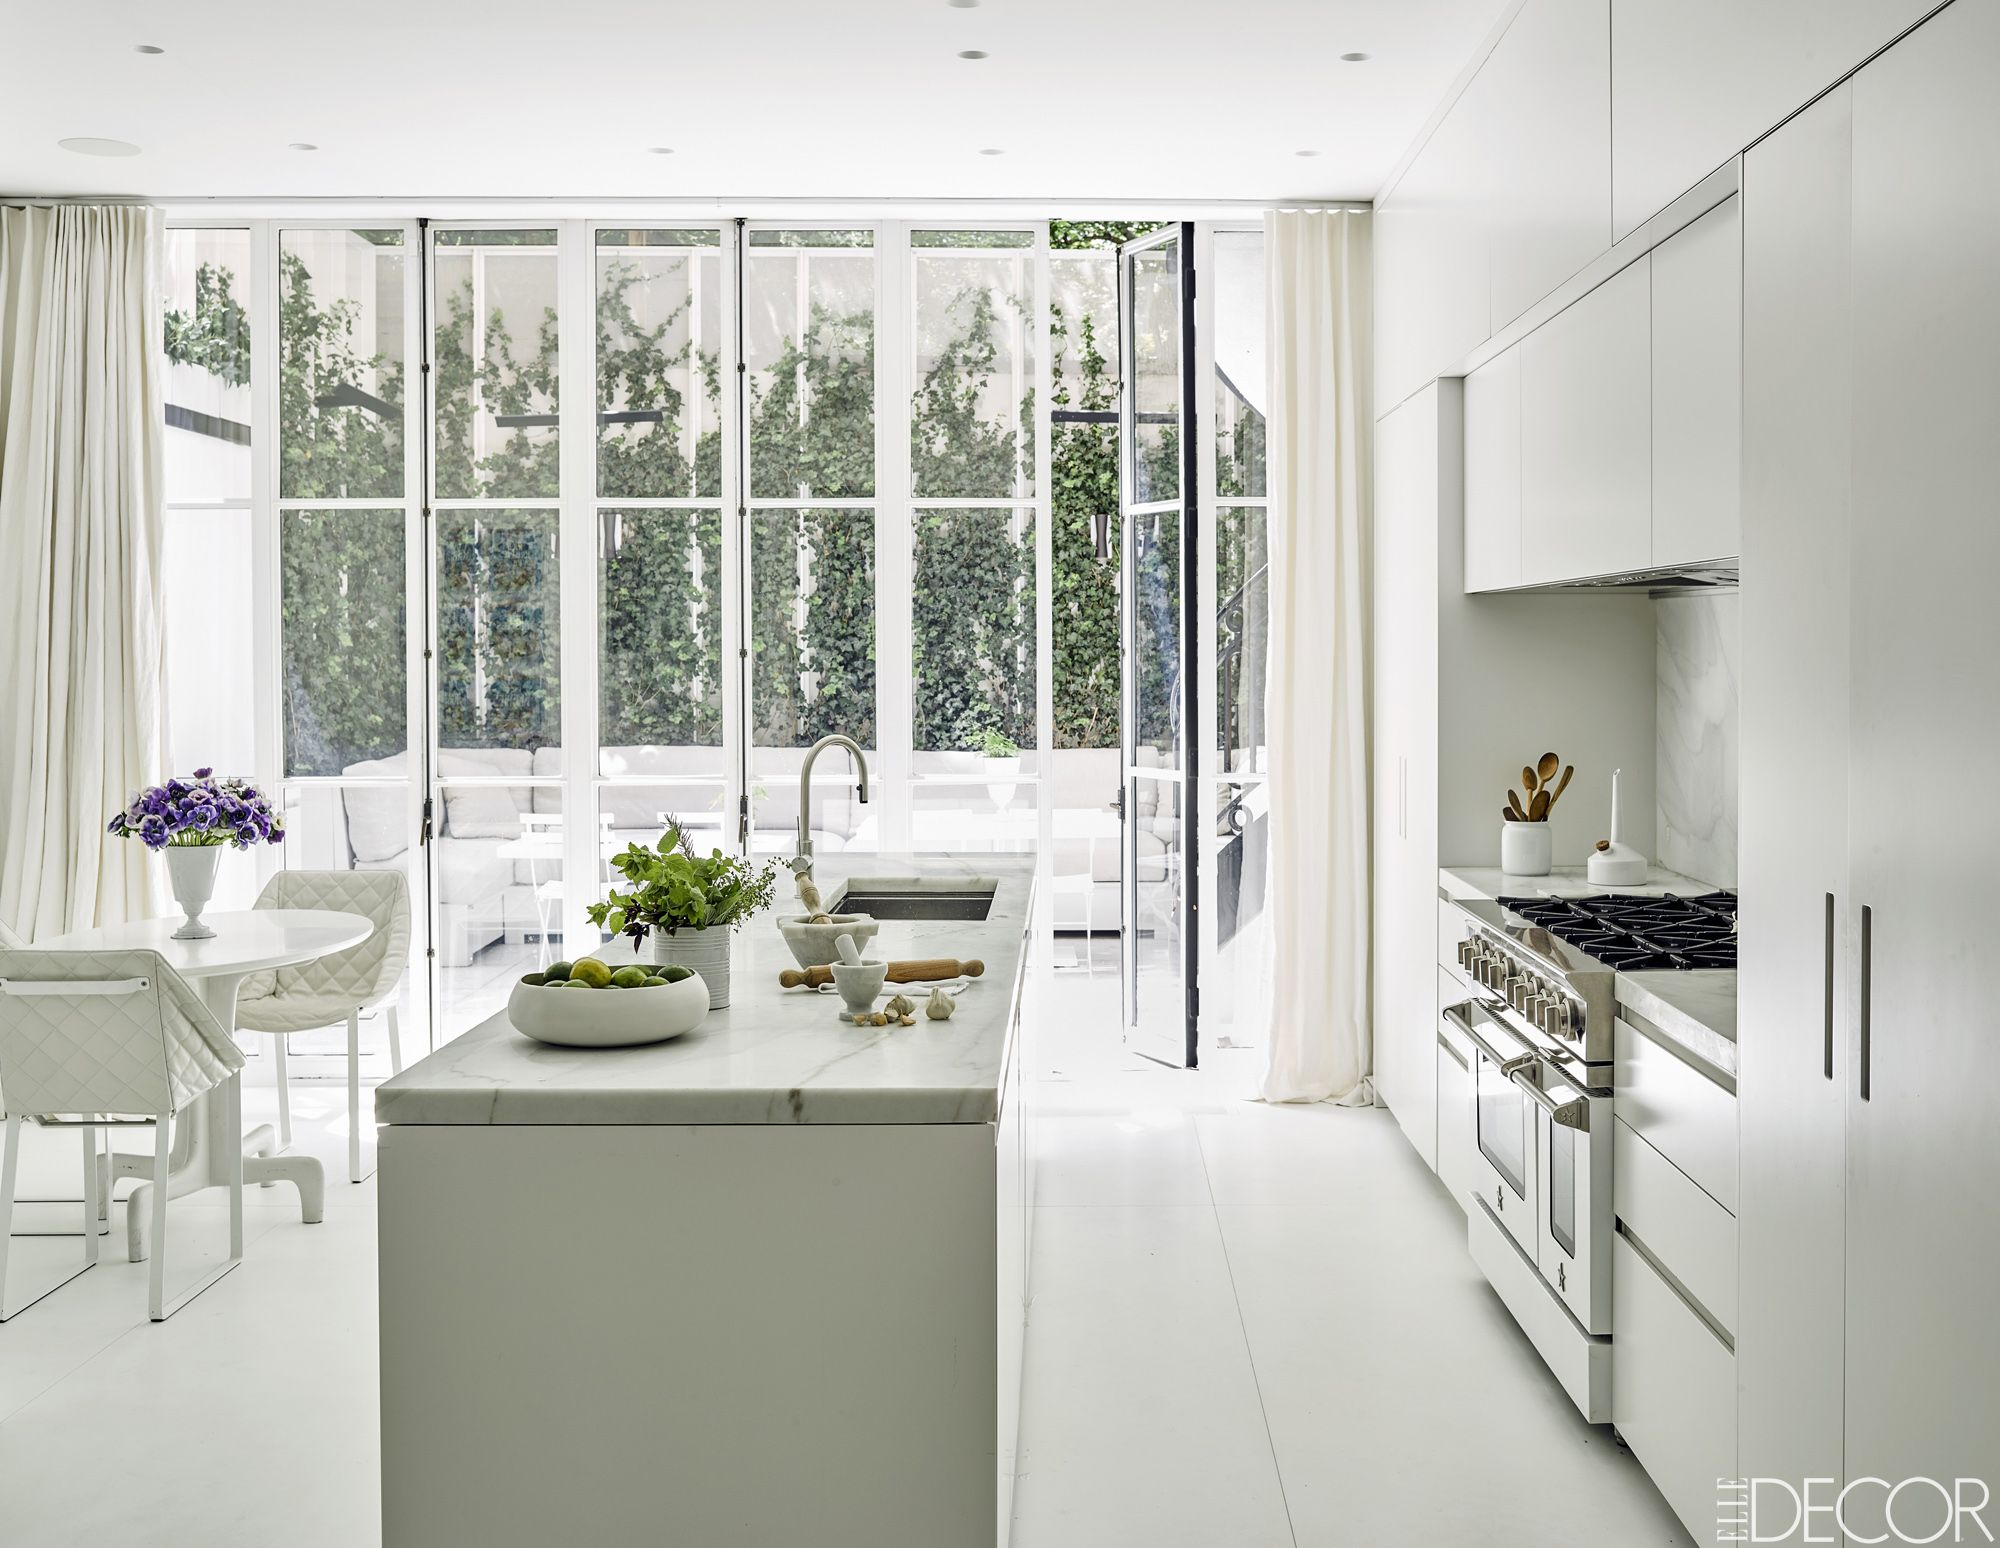 25 Minimalist Kitchen Design Ideas Pictures Of Minimalism Styled Rh  Elledecor Com